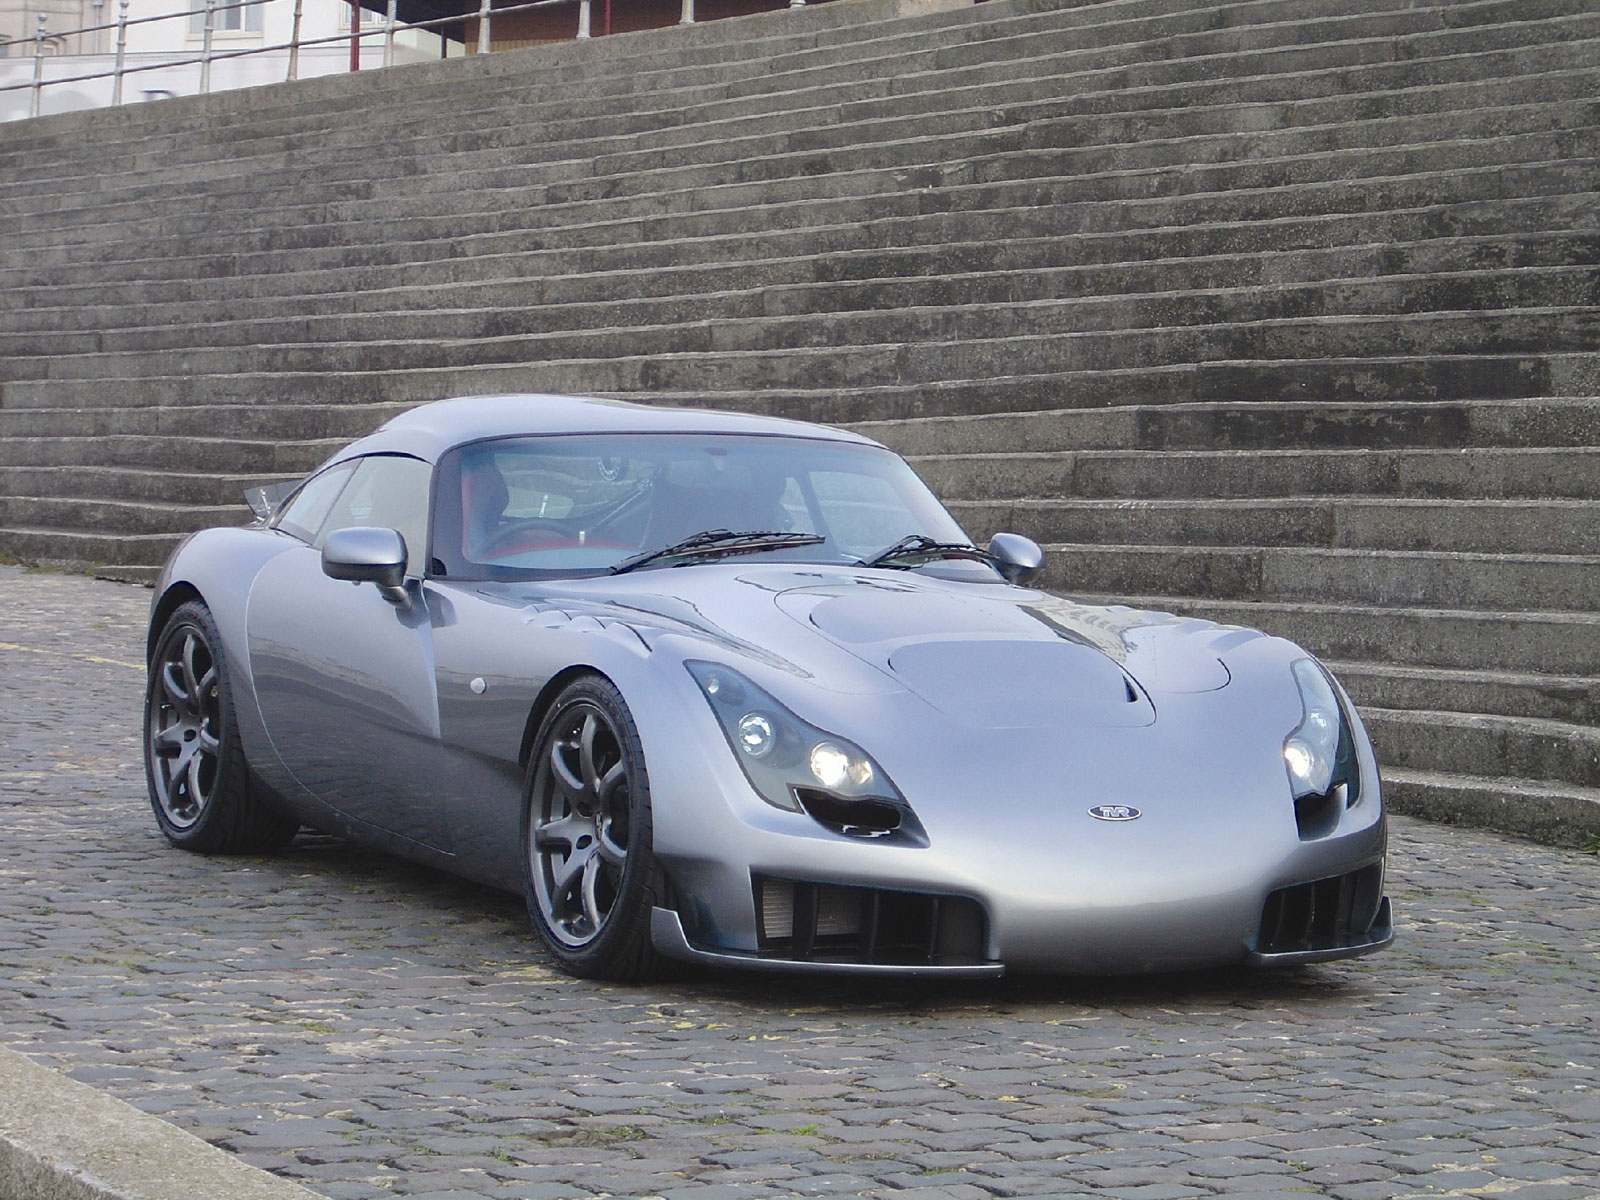 2005 TVR Speed 12 #12